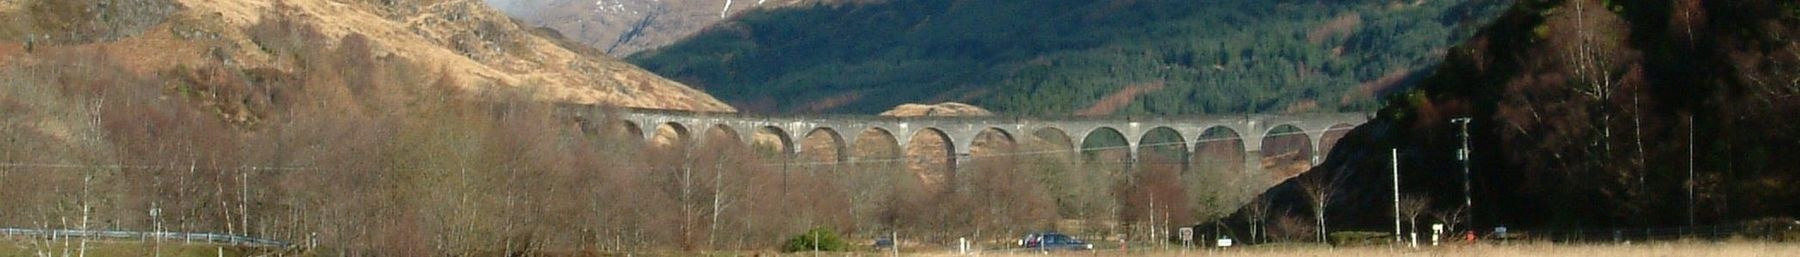 Glenfinnan Viaduct on the West Highland Railway